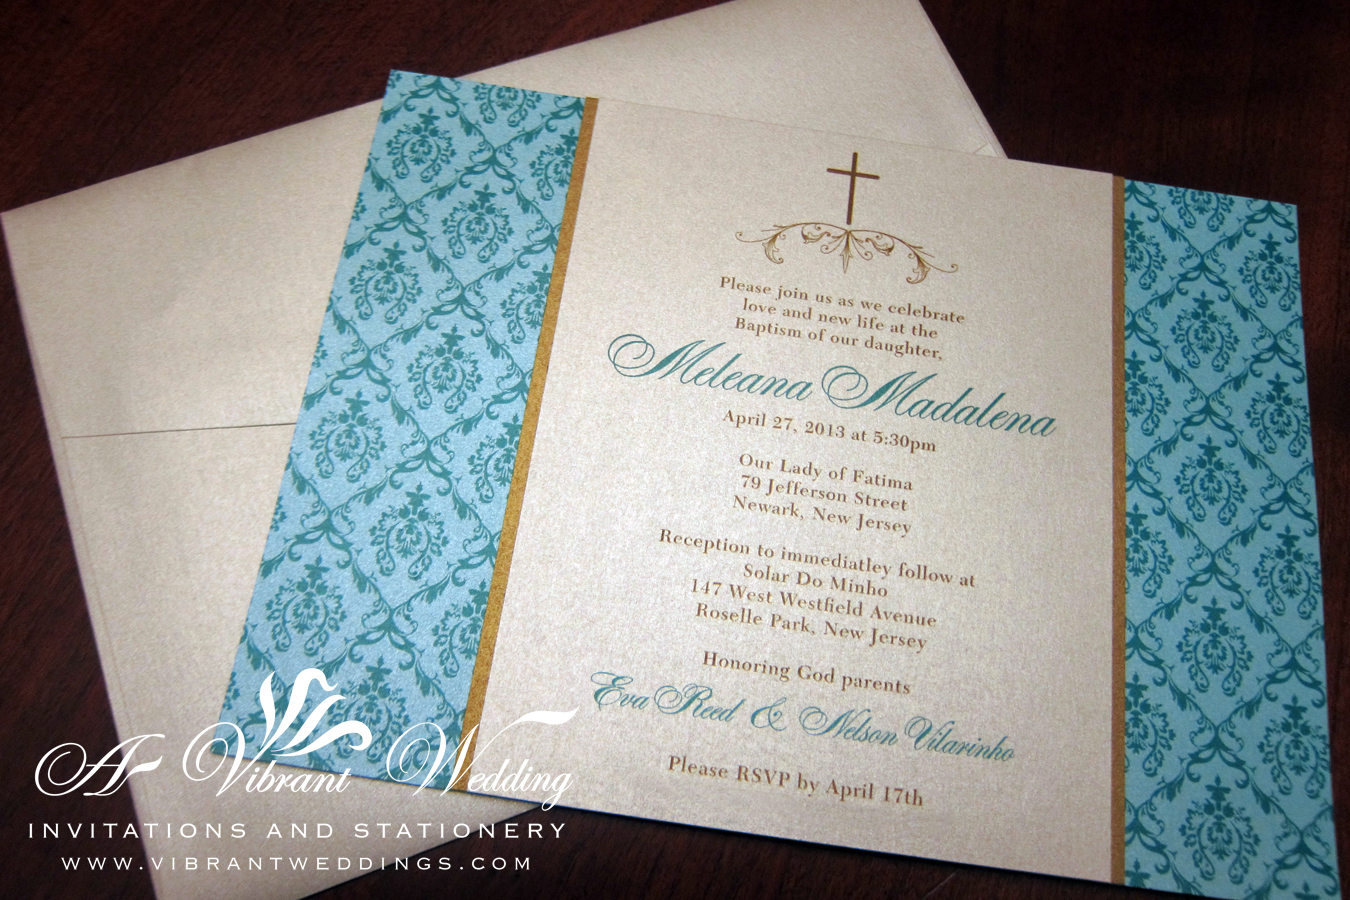 Baptism – A Vibrant Wedding Invitations